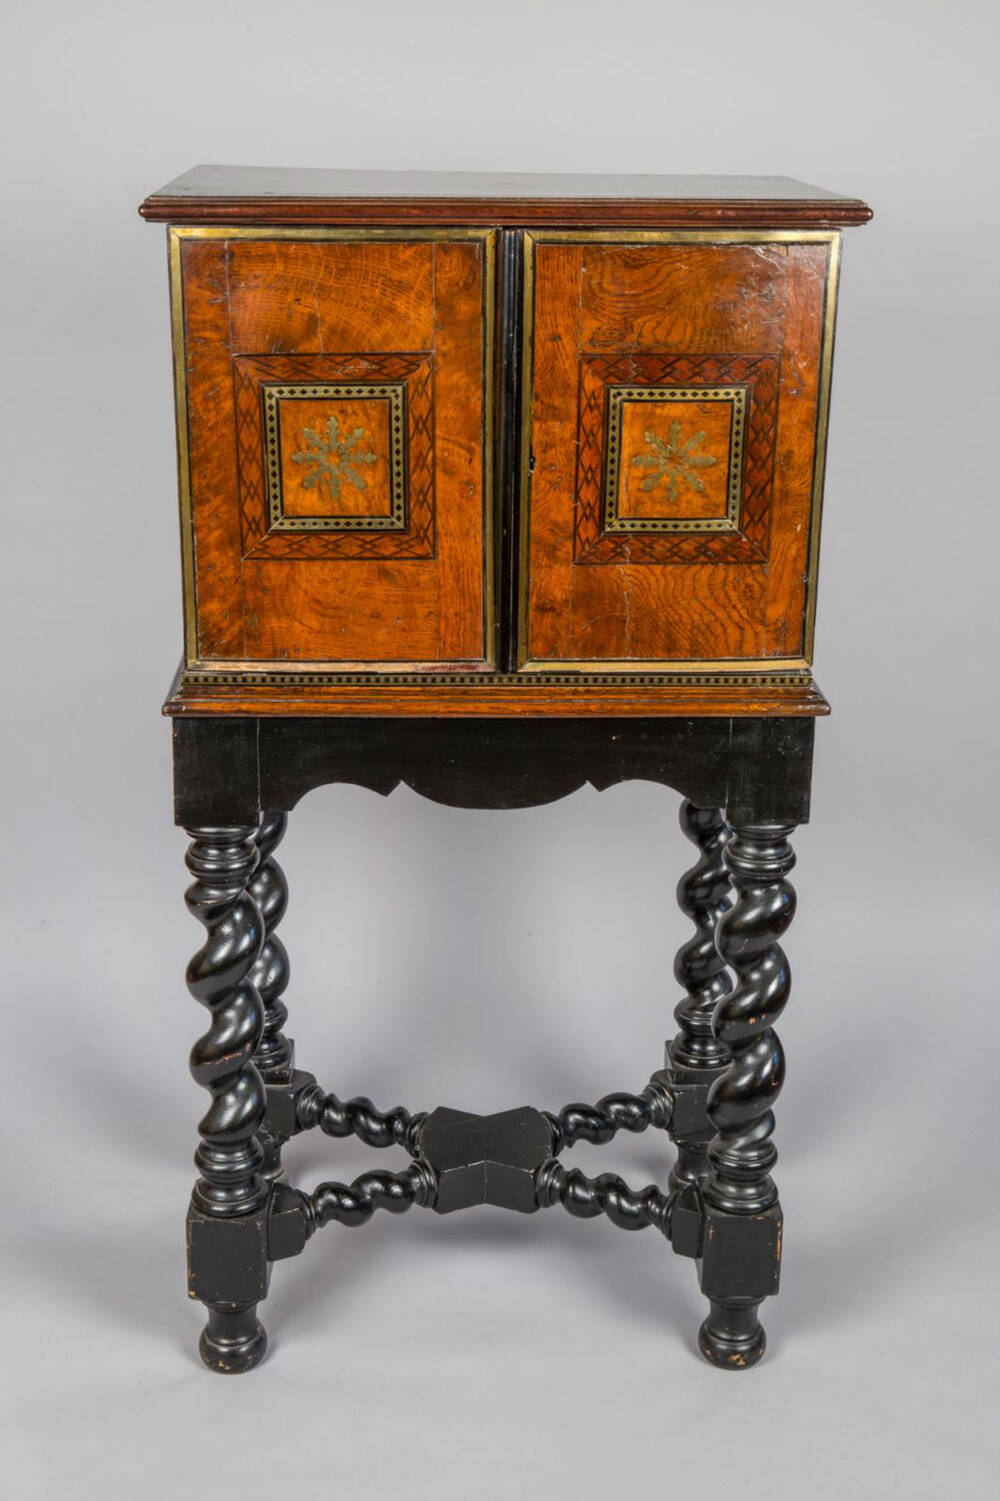 A 17th-century spice cabinet from Crathes Castle, sitting on a later stand